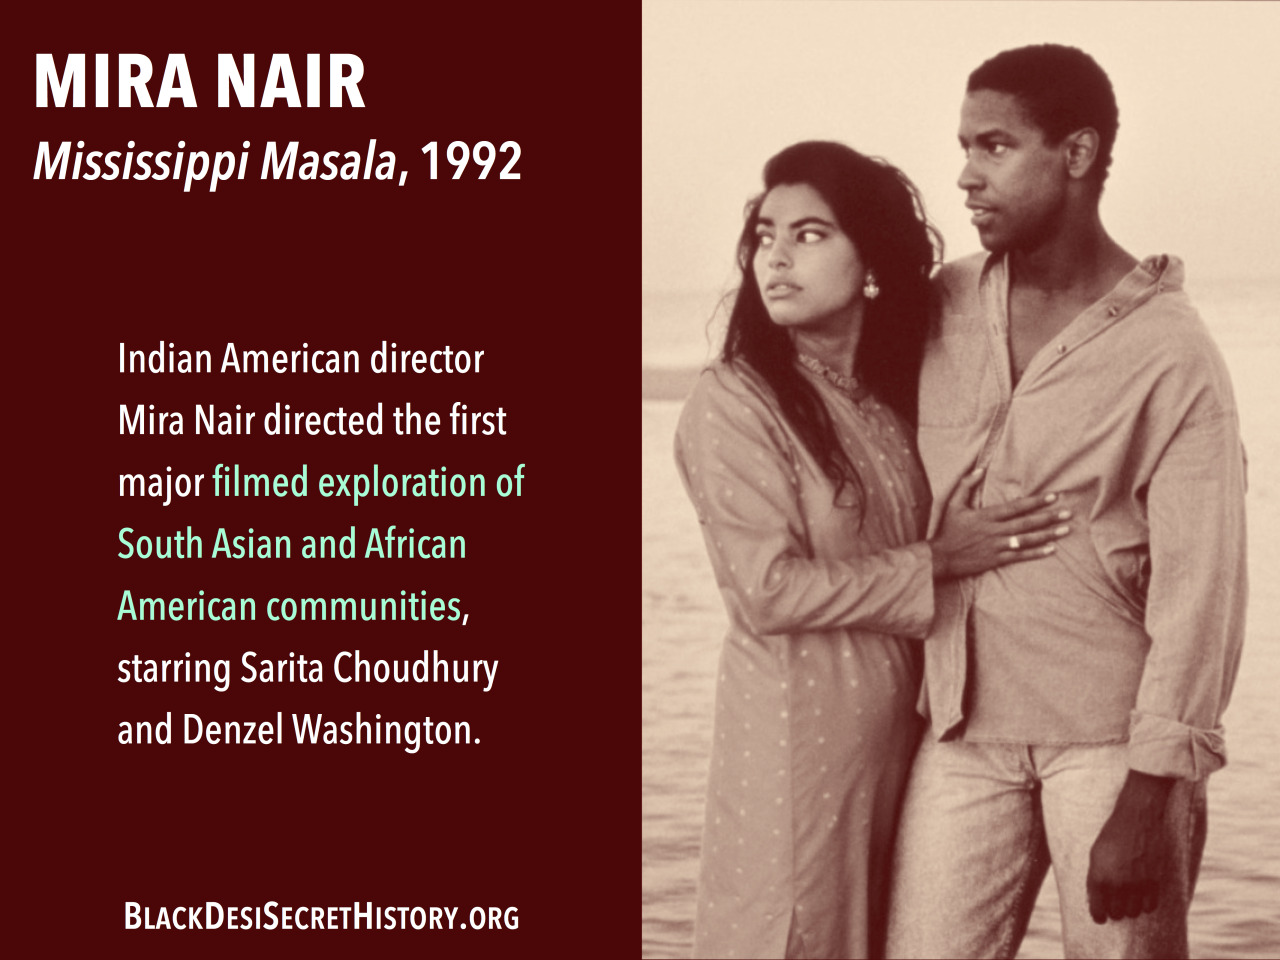 MIRA NAIR, Mississippi Masala, 1992: Indian American director Mira Nair directed the first major filmed exploration of South Asian and African American communities, starring Sarita Choudhury and Denzel Washington.